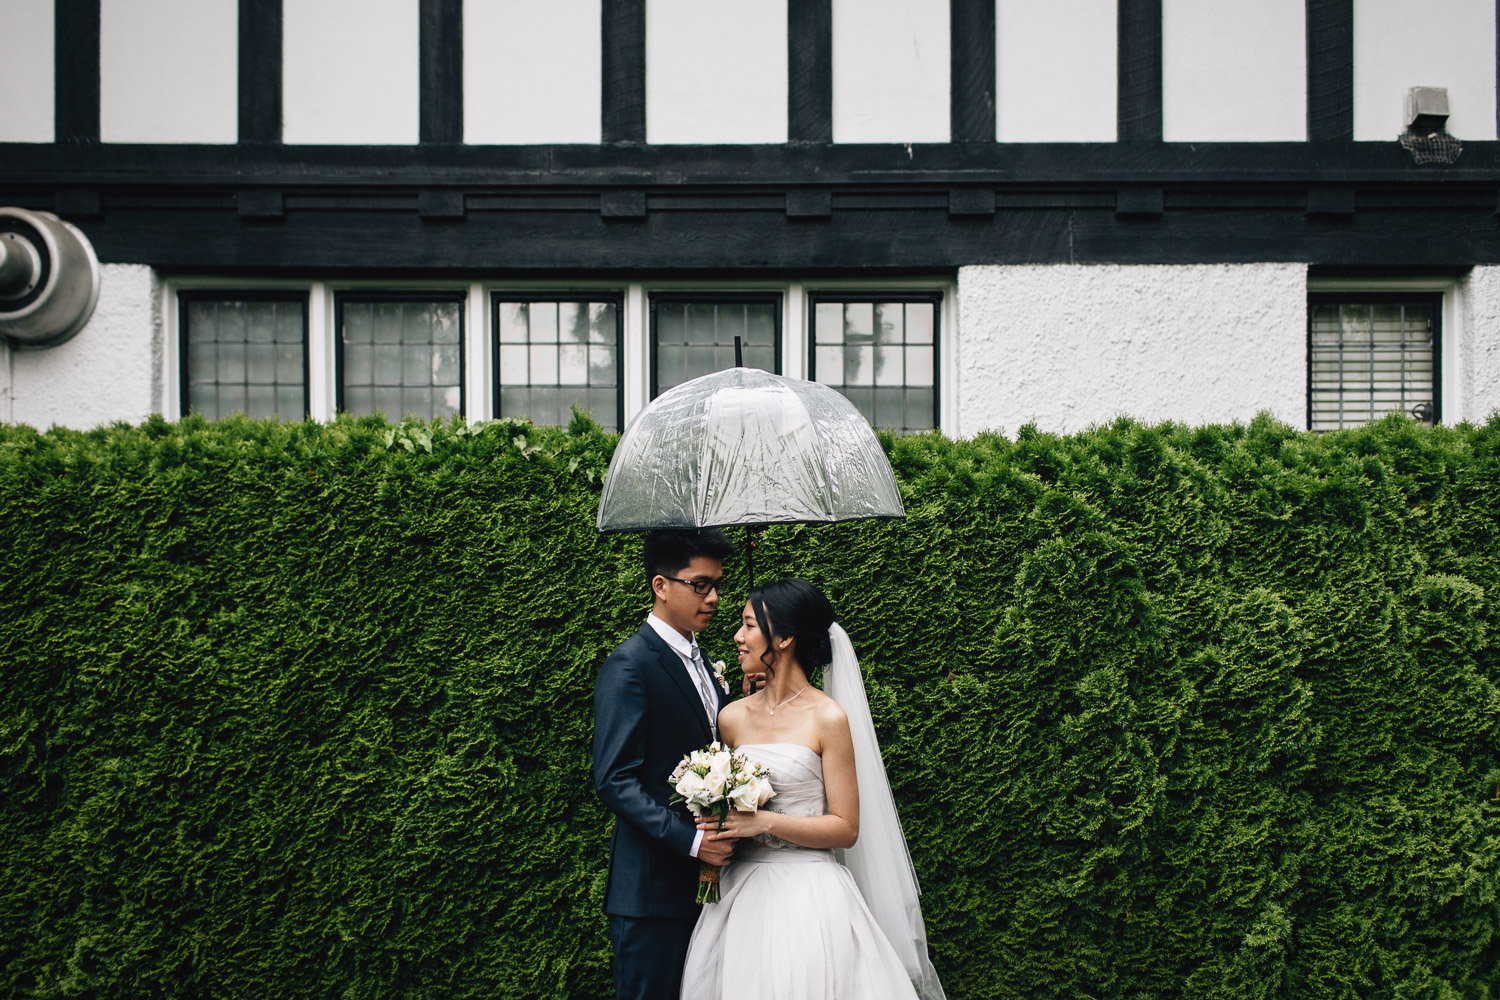 rainy summer wedding in vancouver at brockhouse restaurant clear umbrella photography